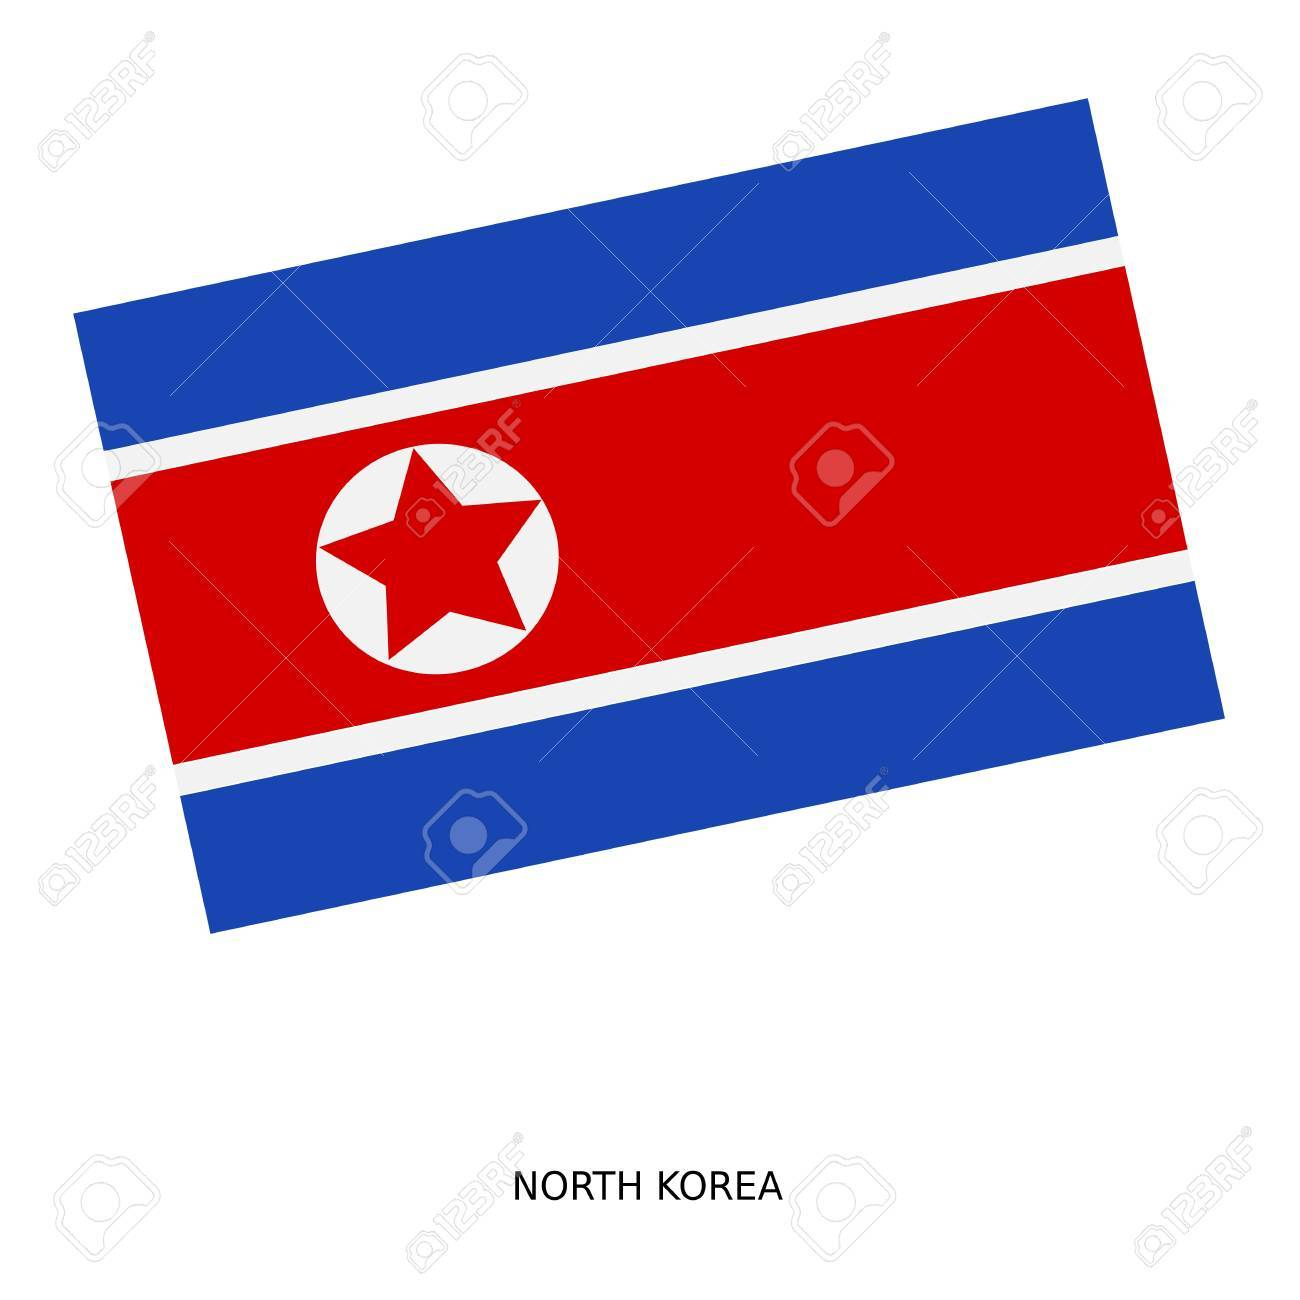 National Flag Of North Korea Stock Photo Picture And Royalty Free